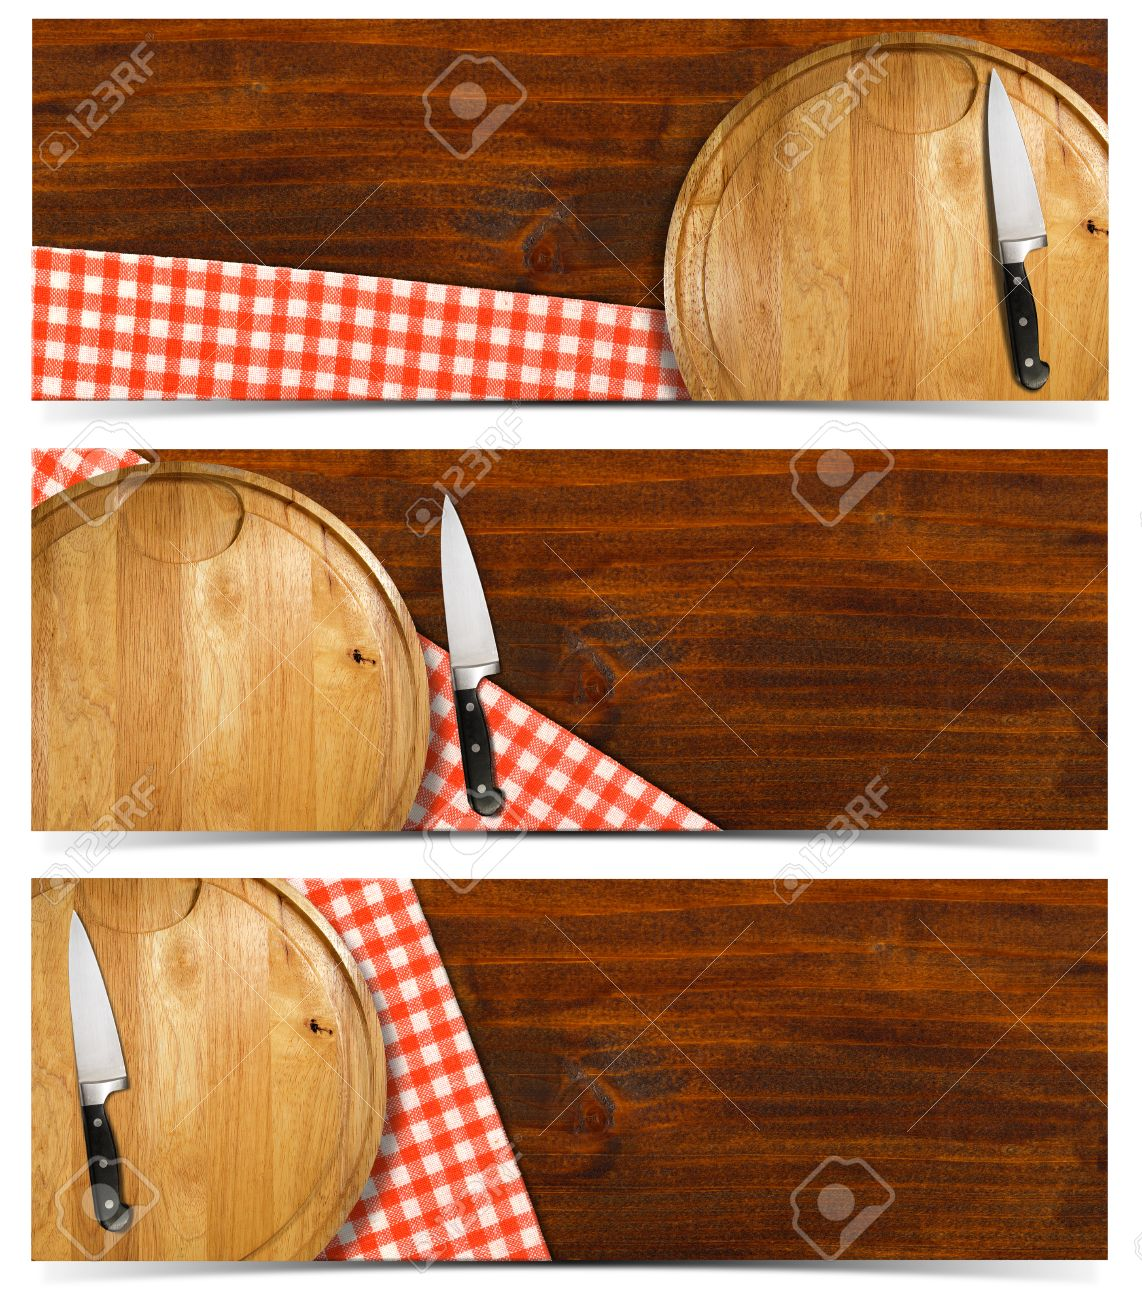 23557748 Cooking banners with round cutting board red checked tablecloth on wooden table and kitchen knife is Stock Photo